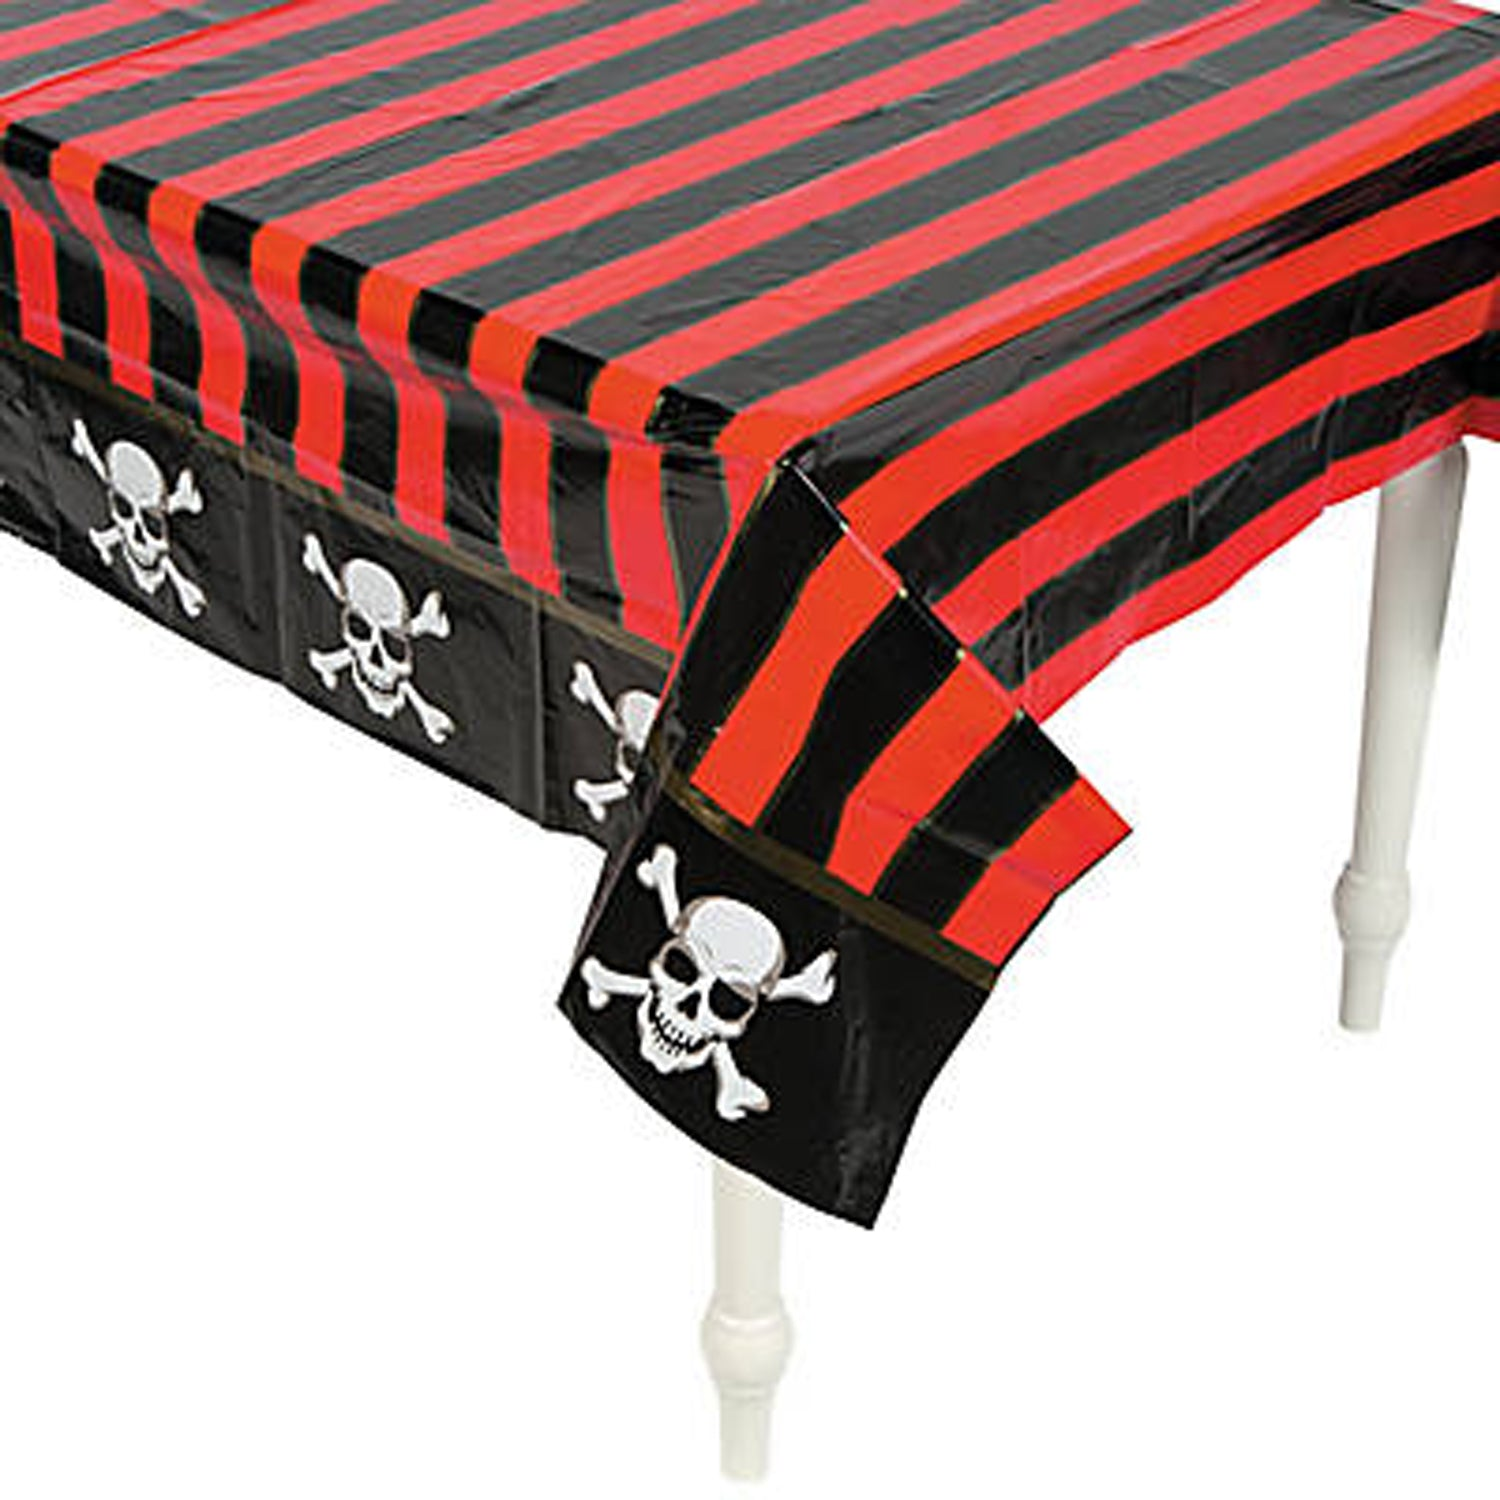 PIRATE PARTY Table Cover Tablecloth Black Red Plastic Table Cloth Free Postage  sc 1 st  Party by Post & PIRATE PARTY Red Stripe Table Cover Tablecloth Plastic Tablecloth ...